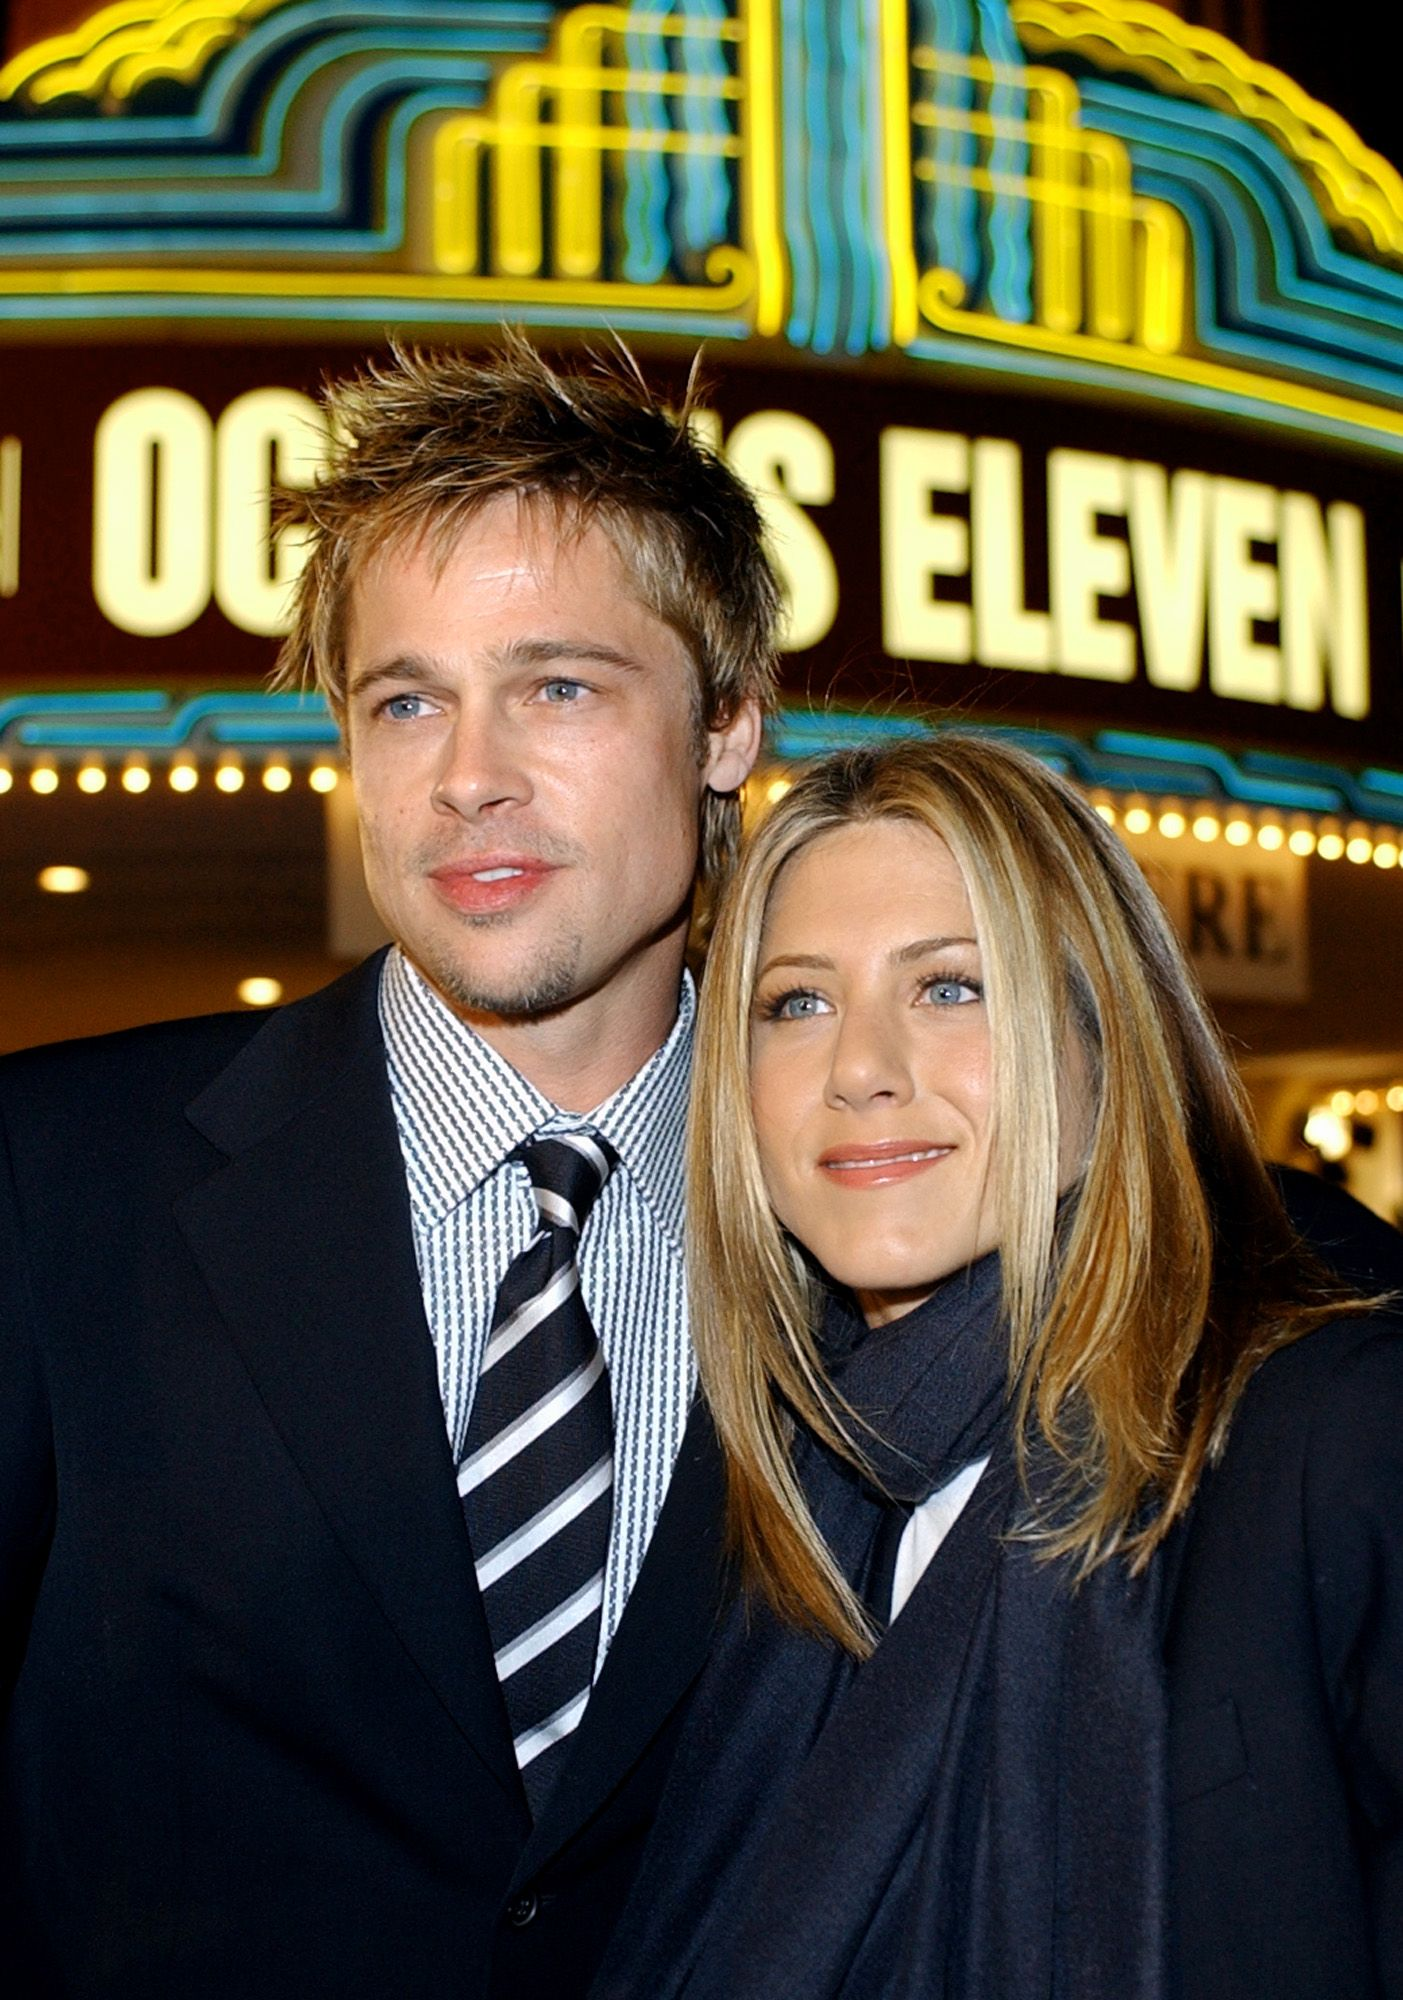 Brad Pitt And Jennifer Aniston Attend The Movie Premiere Of Ocean S Eleven 2001 Pitt And Anist Brad Pitt And Jennifer Brad Pitt Brad Pitt Jennifer Aniston